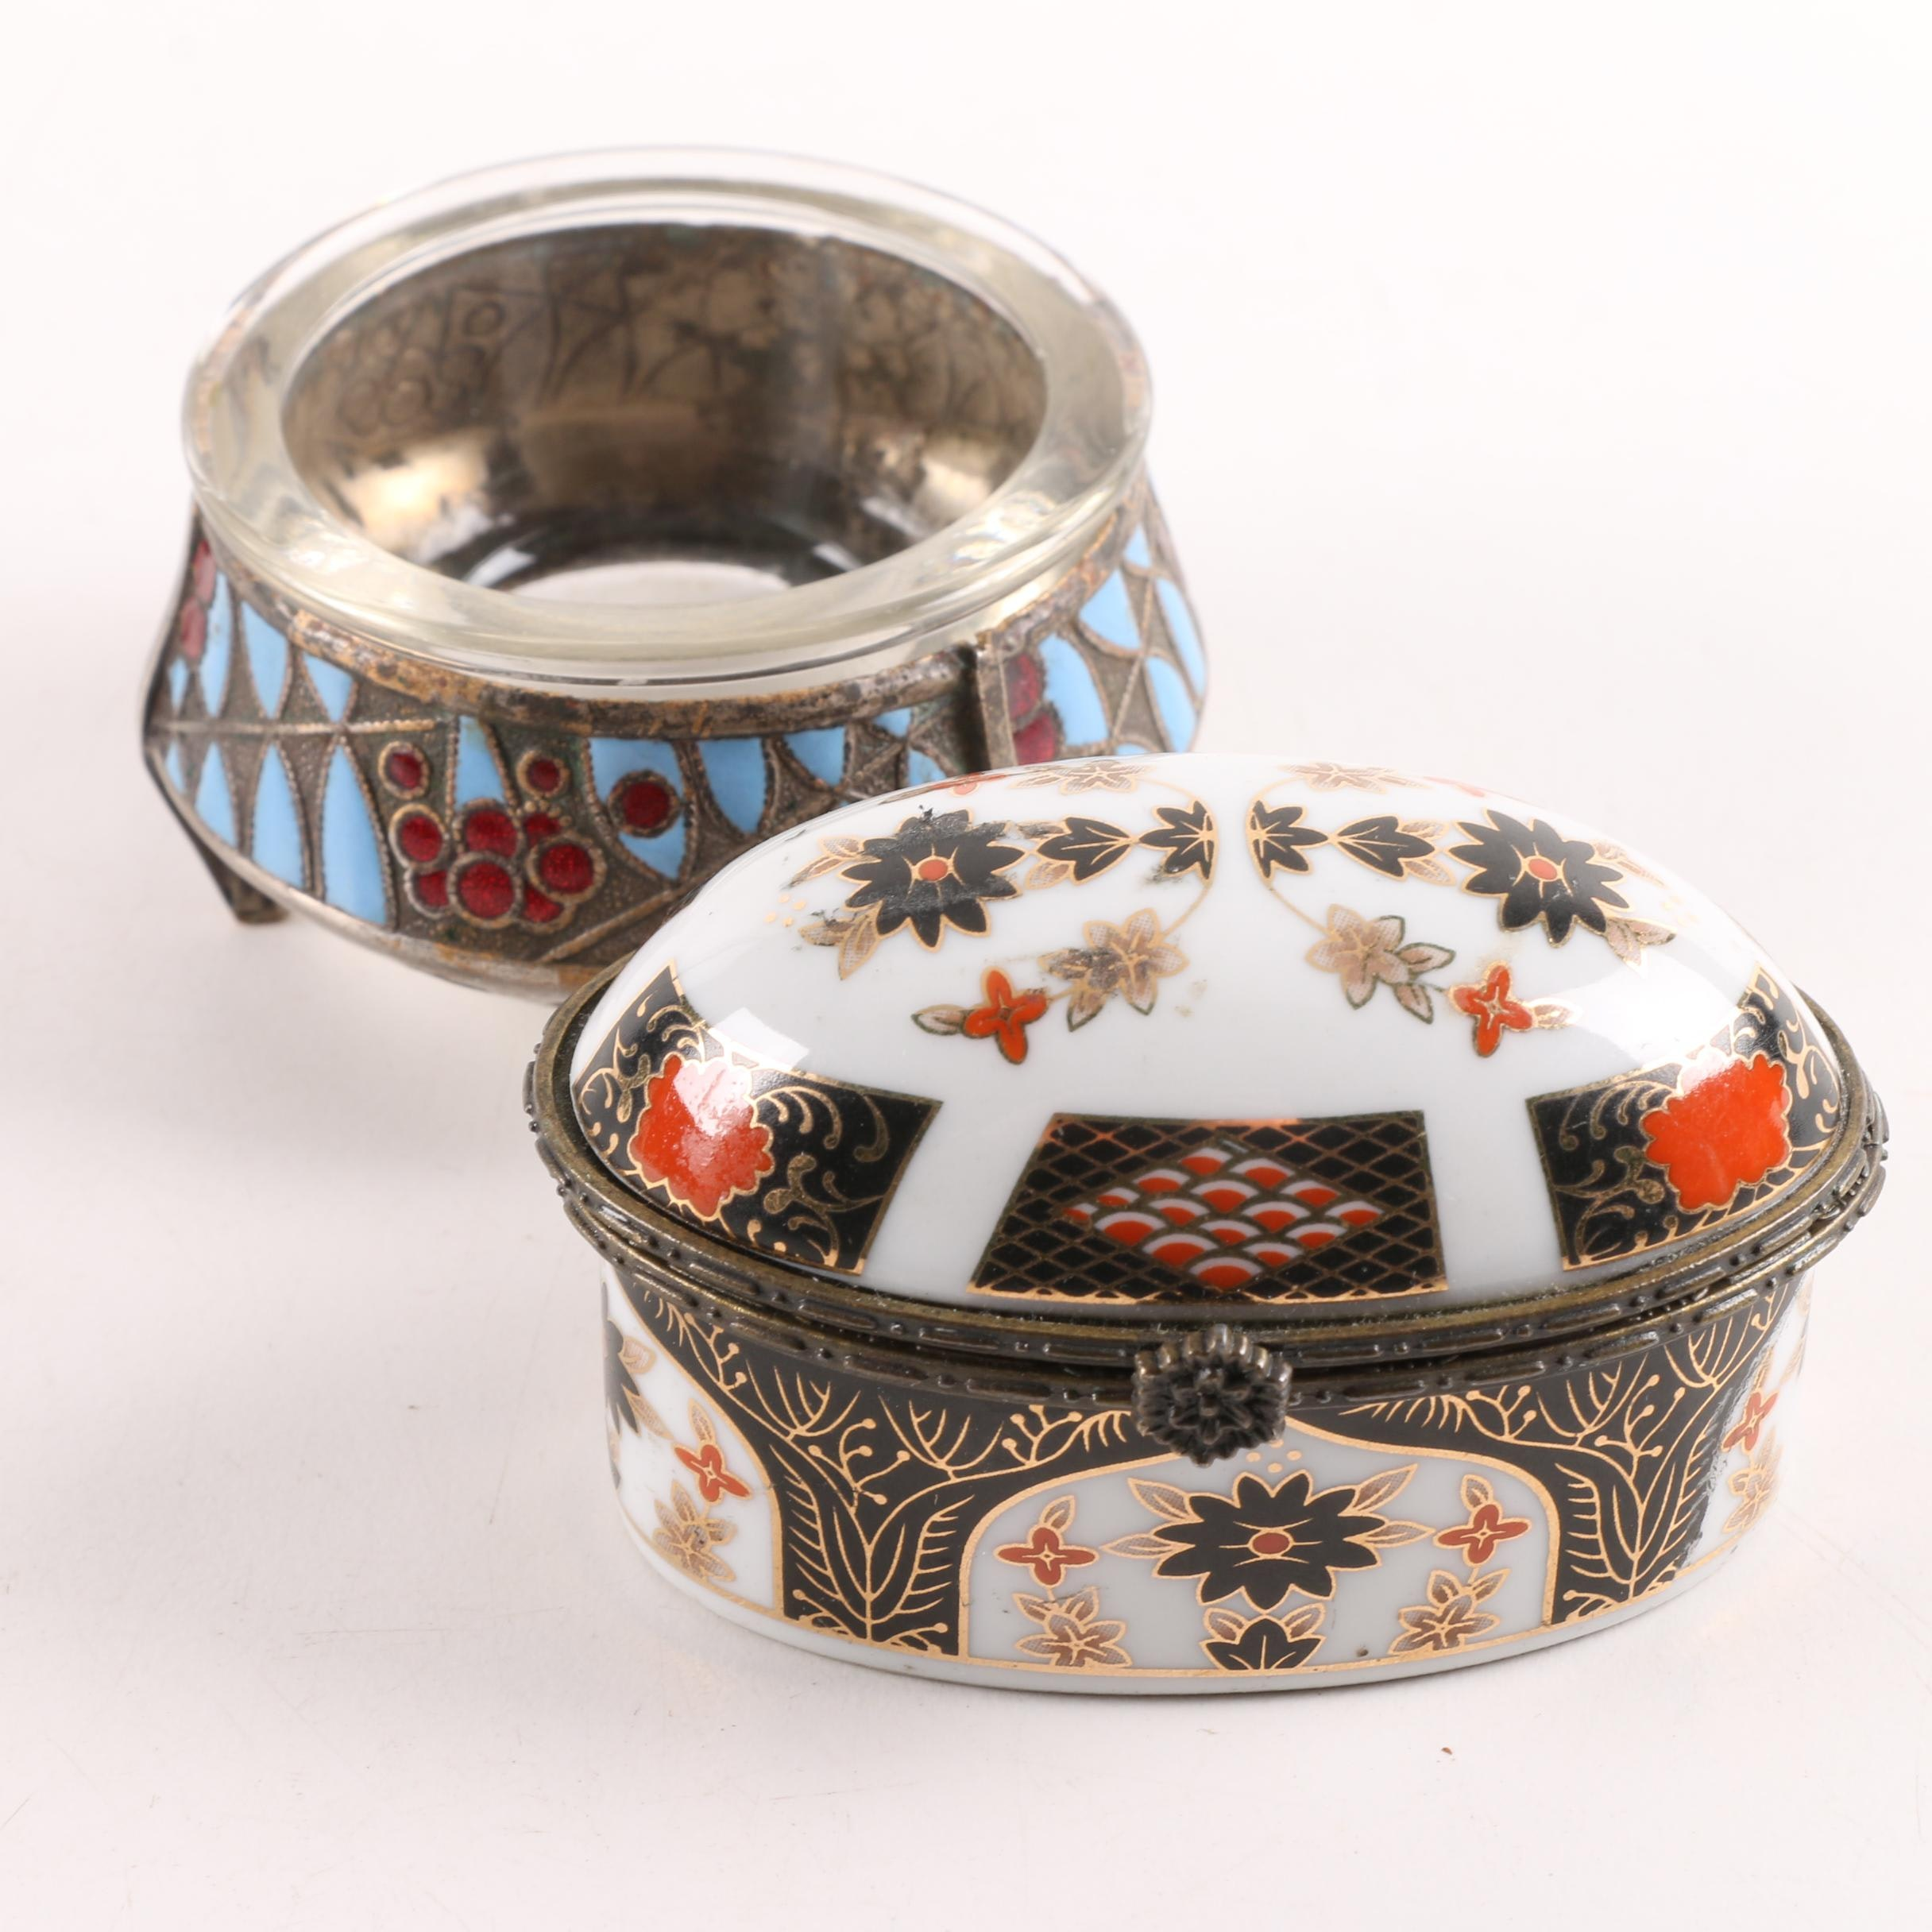 Hommet Russian Silver Plate and Enameled Salt Cellar with Ceramic Trinket Box